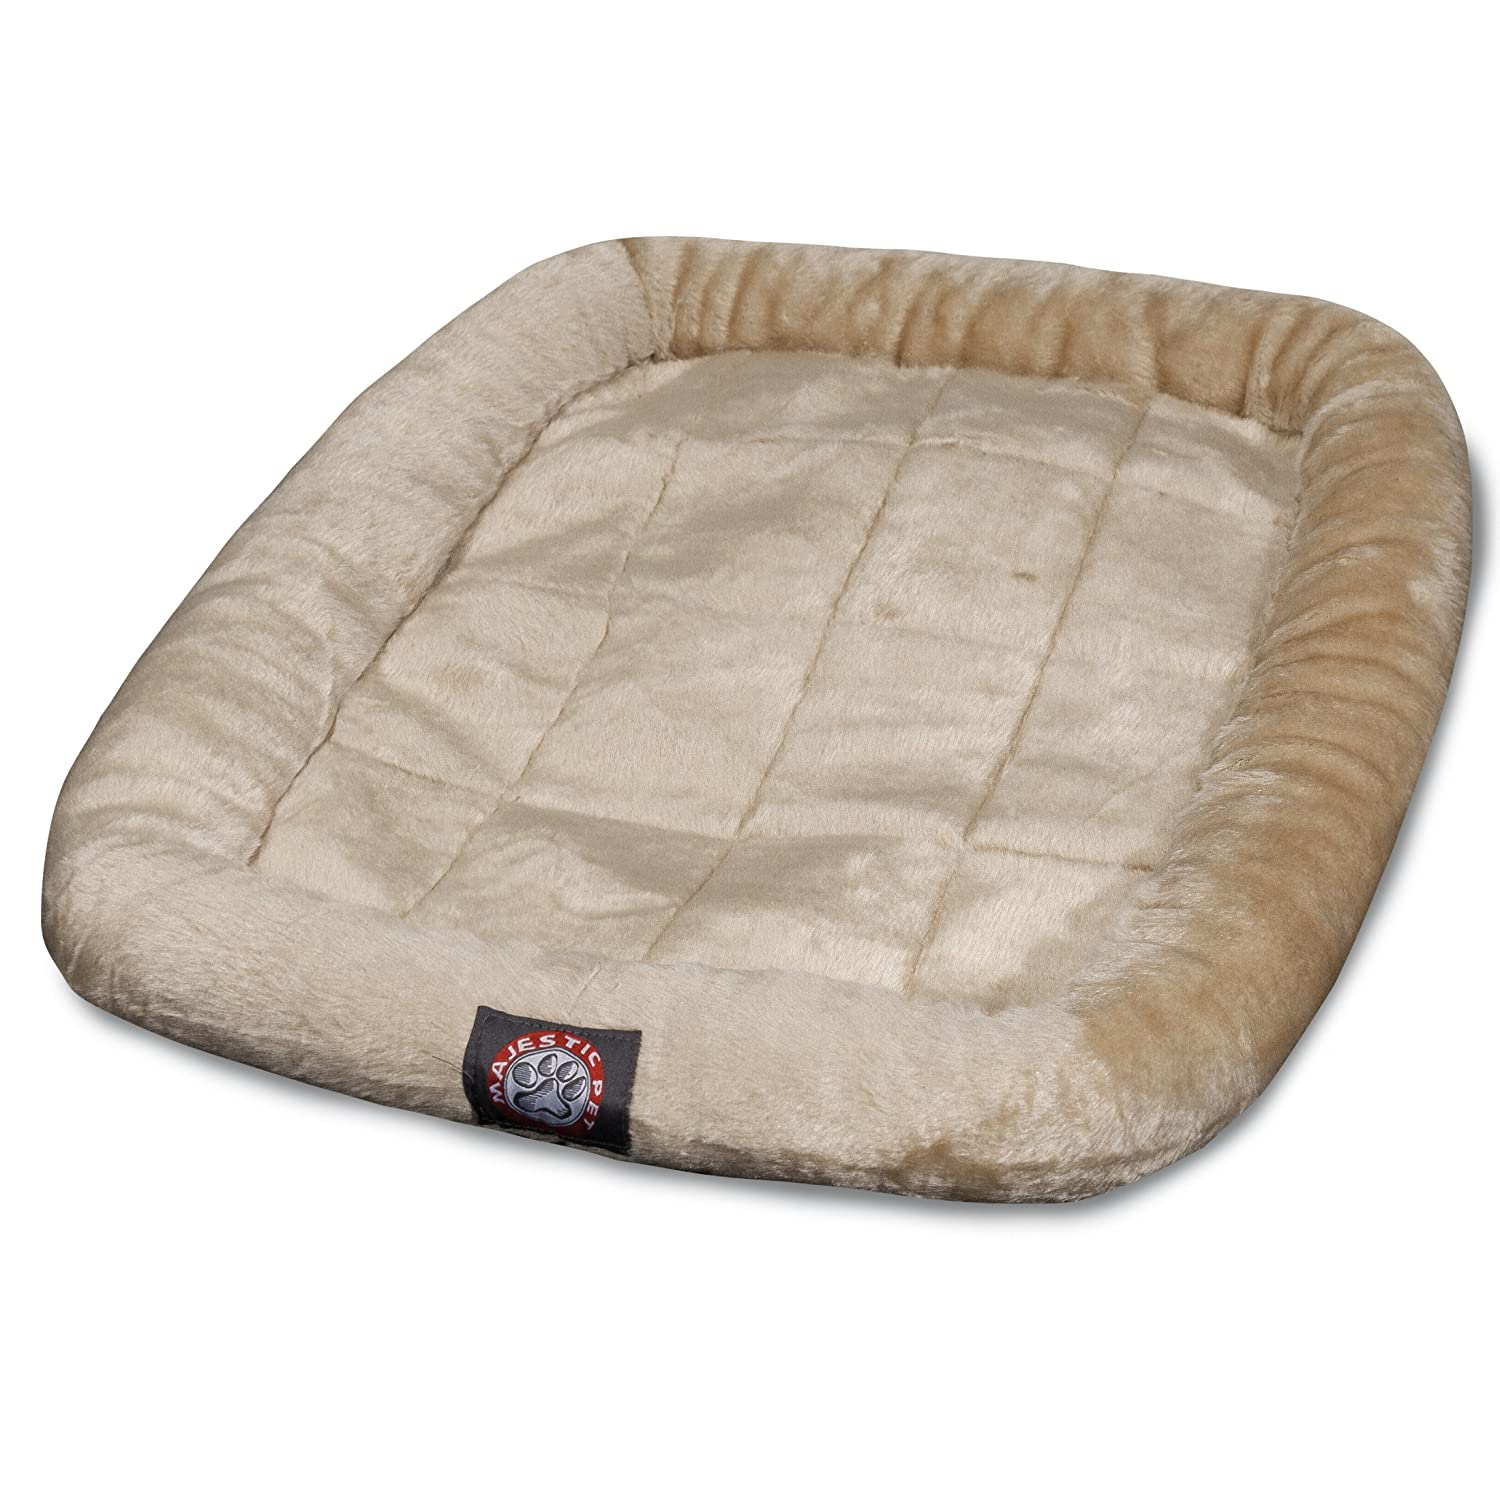 48 inch Honey Crate Pet Bed Mat By Majestic Pet Products